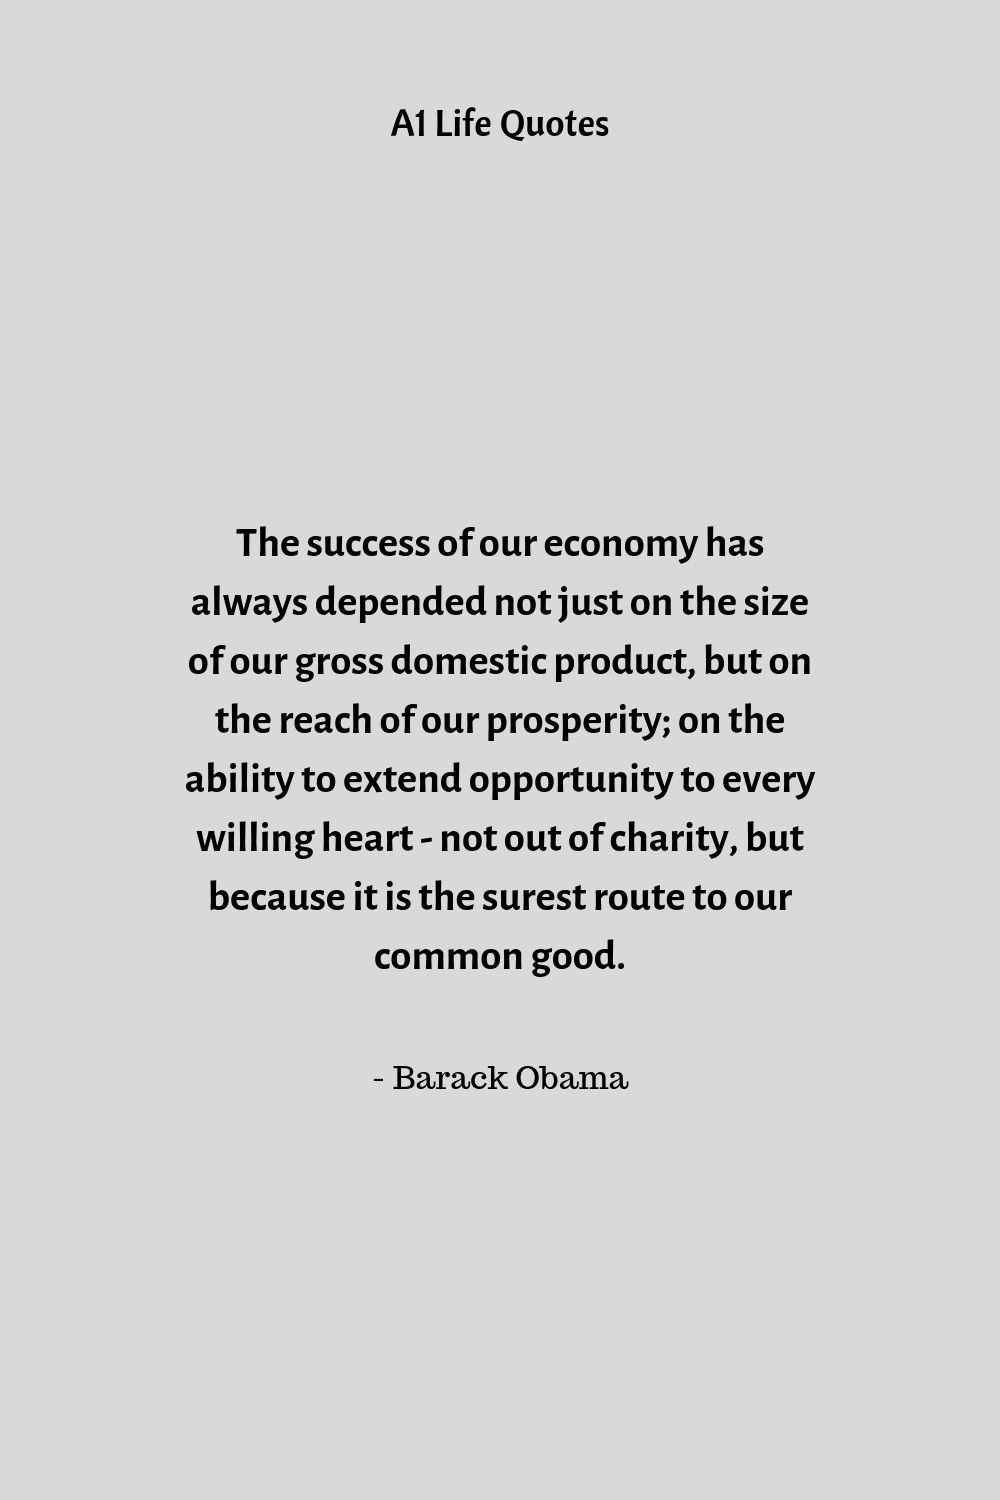 barack obama quotes about success